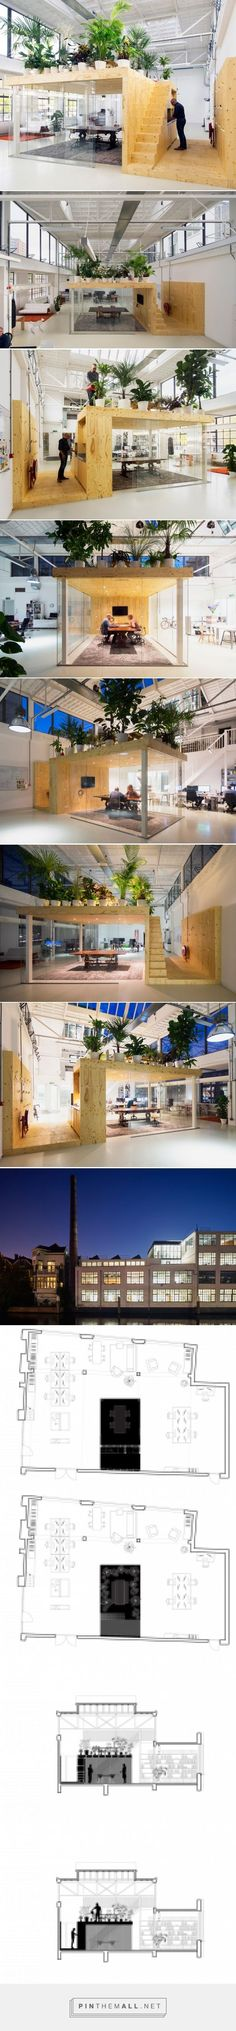 "jvantspijker's renovated office includes an indoor garden - created via <a href=""http://pinthemall.net"" rel=""nofollow"" target=""_blank"">pinthemall.net</a> #Interior Design #Community #Open Work Space"